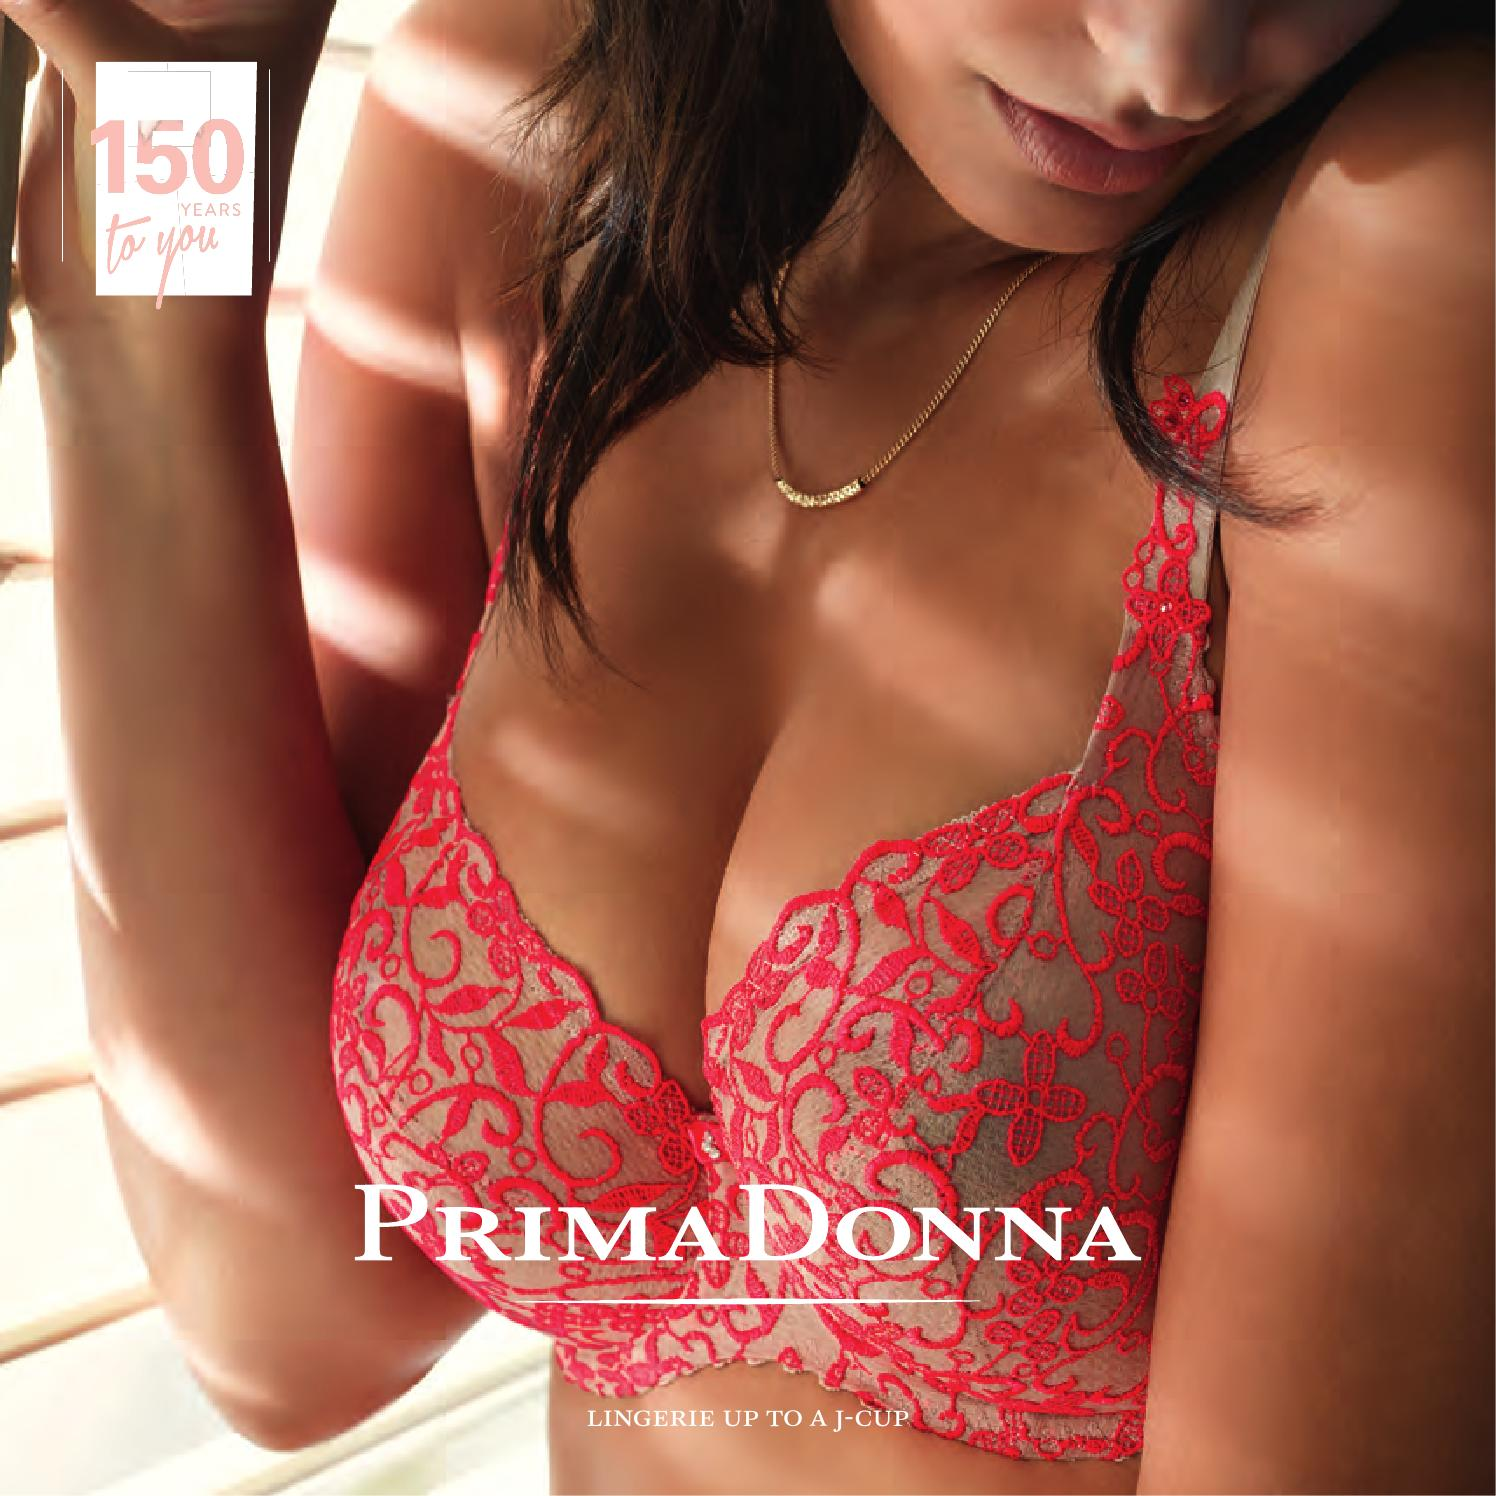 Prima Donna Madison BH Vollschale Natur Cup C-E Bügel-BH Dessous 0162120